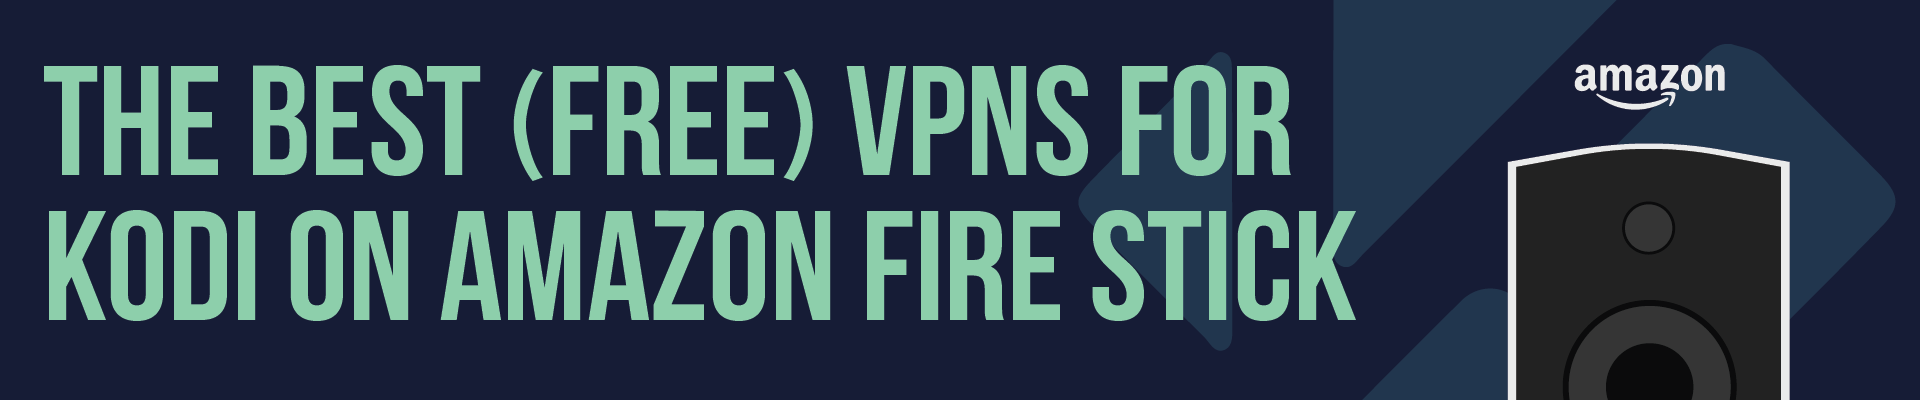 The Best Free VPNs for Kodi on Amazon Fire Stick | BestVPN org